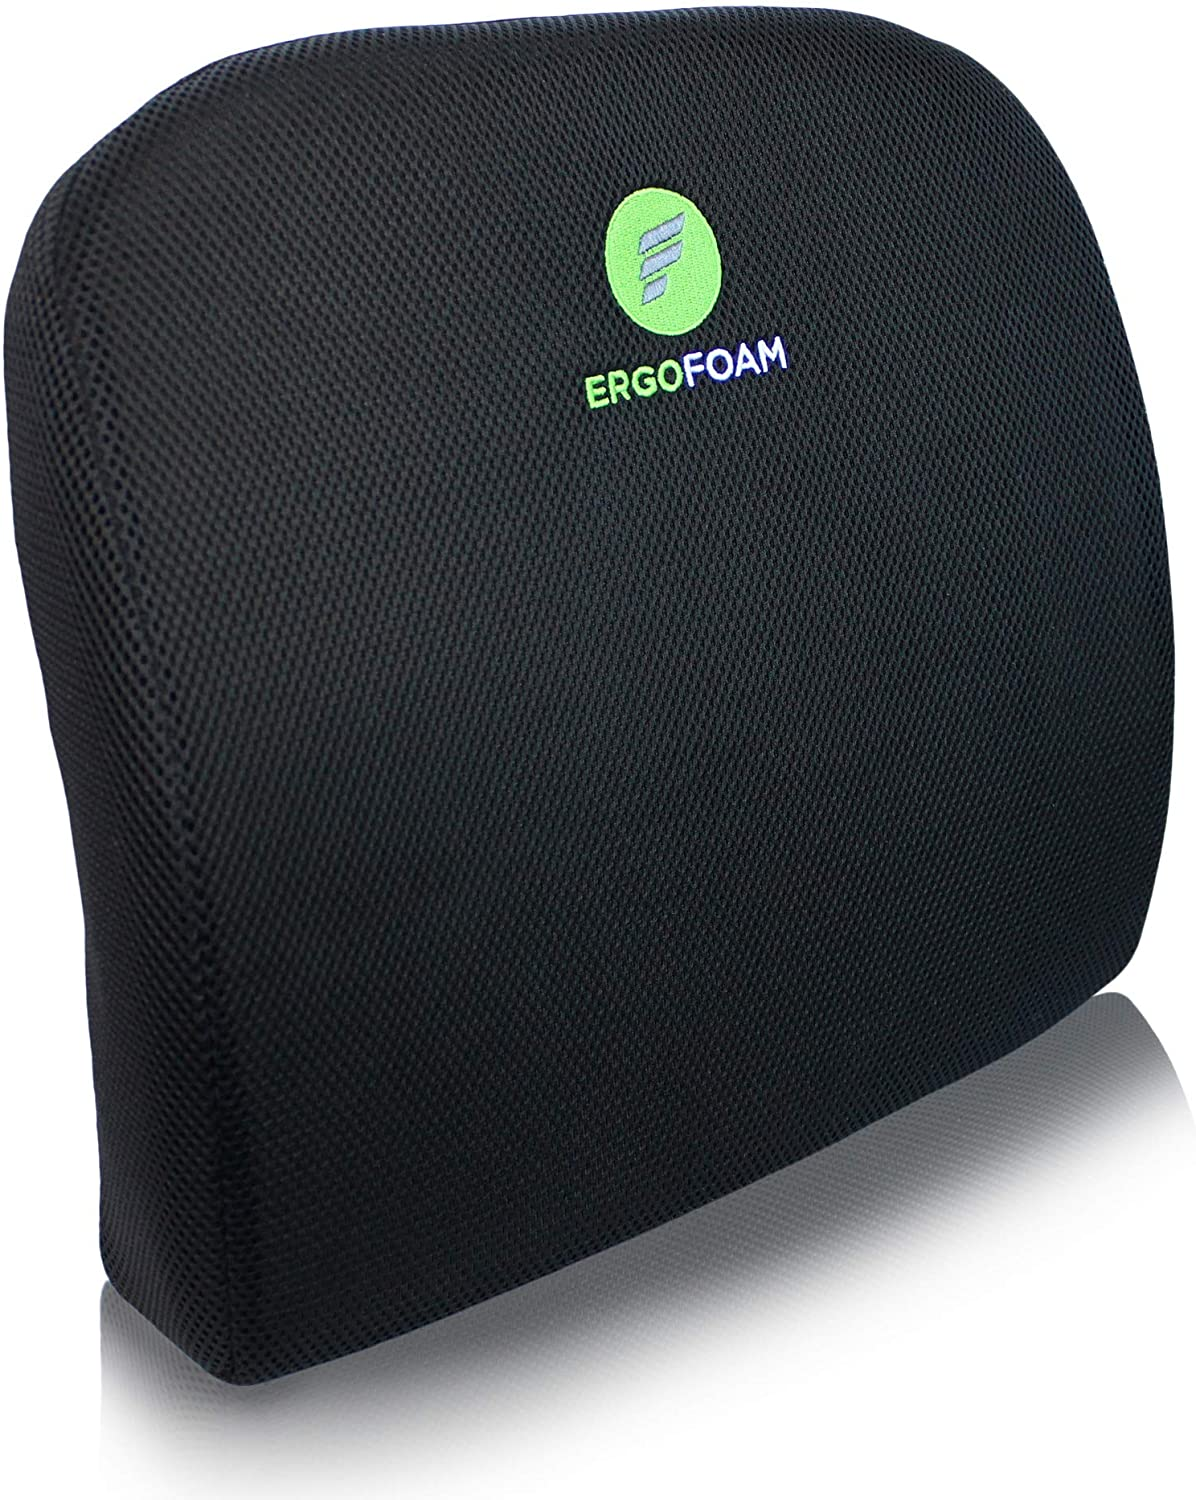 ErgoFoam Lumbar Support Pillow for Breathable Premium 2021 ! Super beauty product restock quality top! spring and summer new - Chair Me